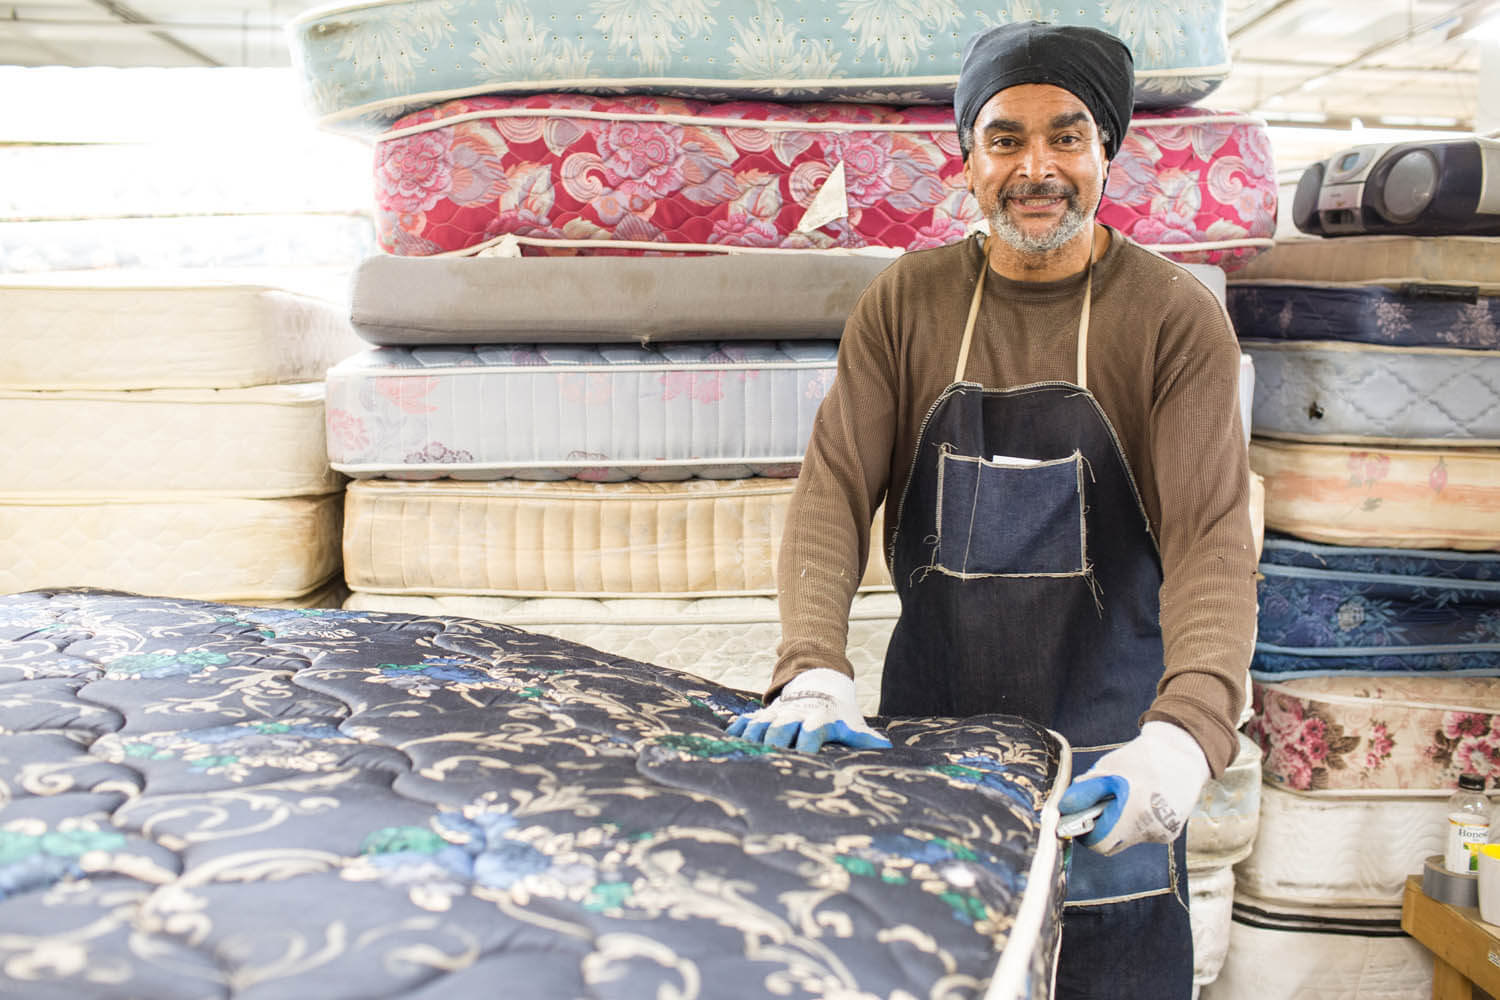 Man in work clothes recycling mattresses